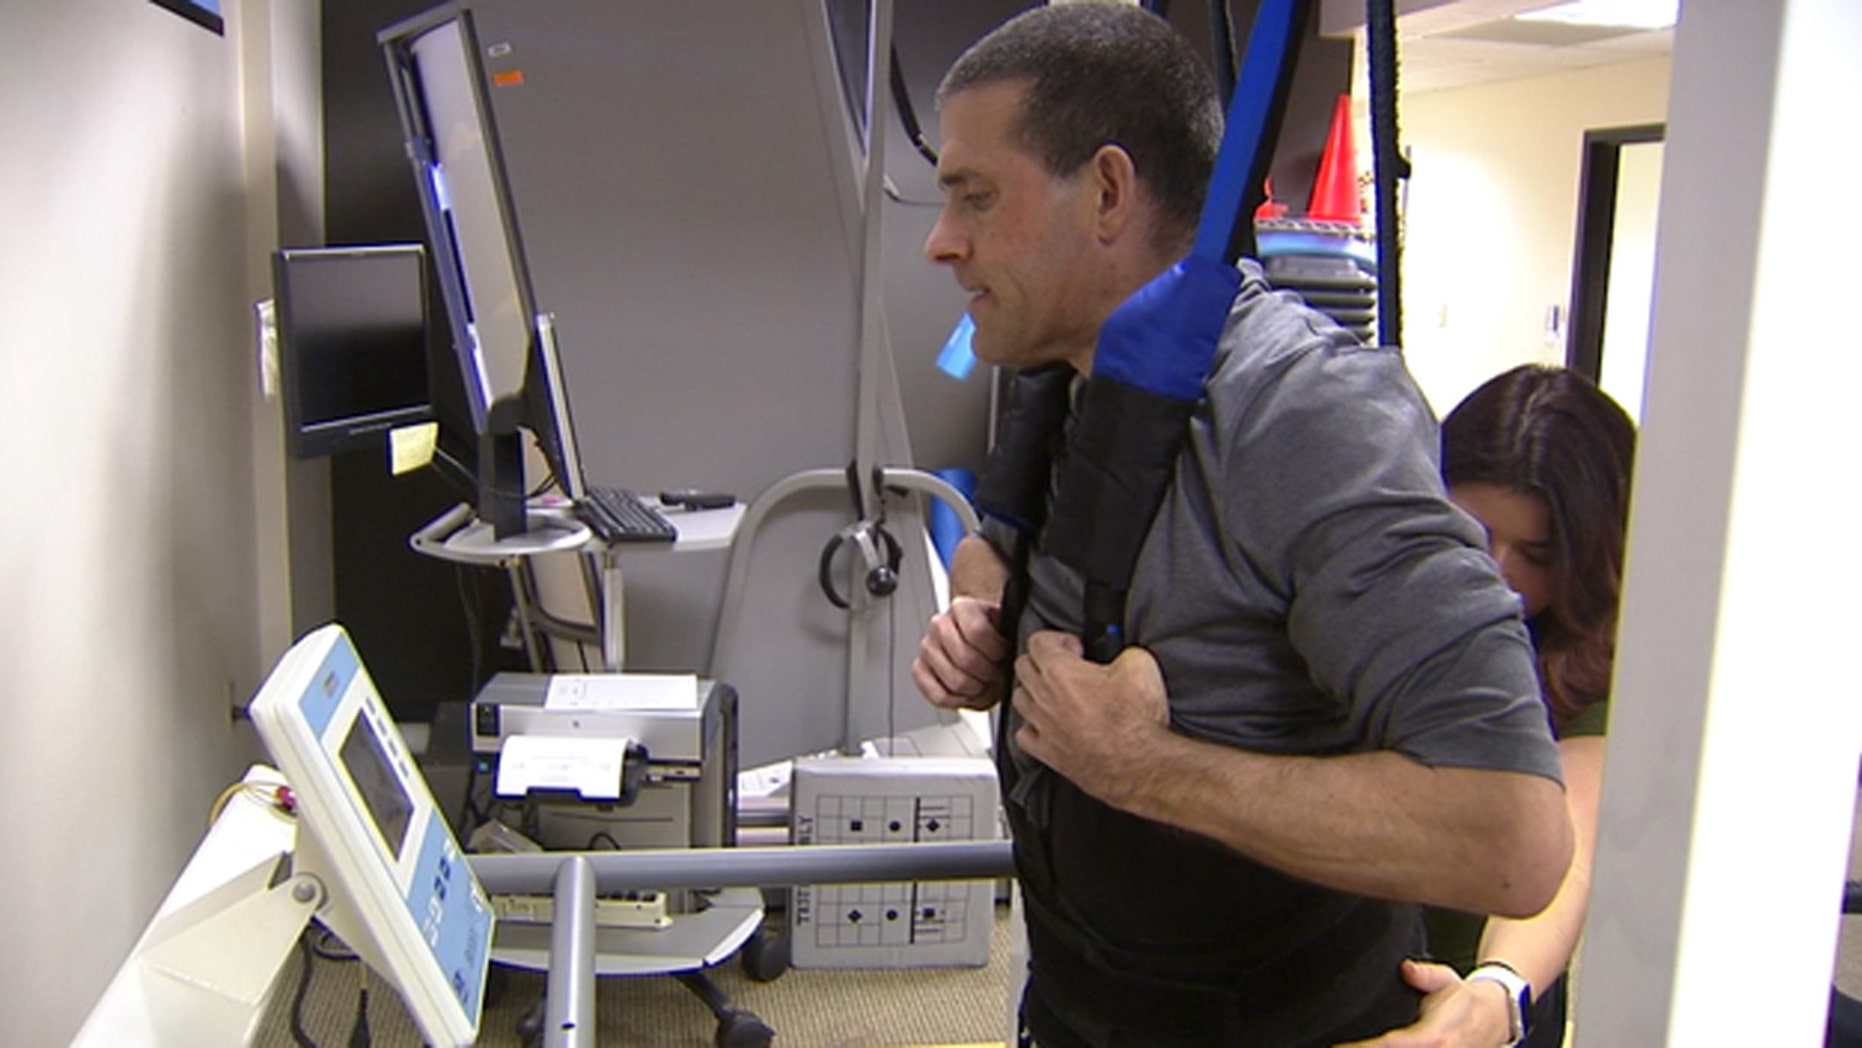 Det. Daniel Bardwell, left paralyzed from the chest down by a complication from a long-term illness, is fighting hard to get back to work.